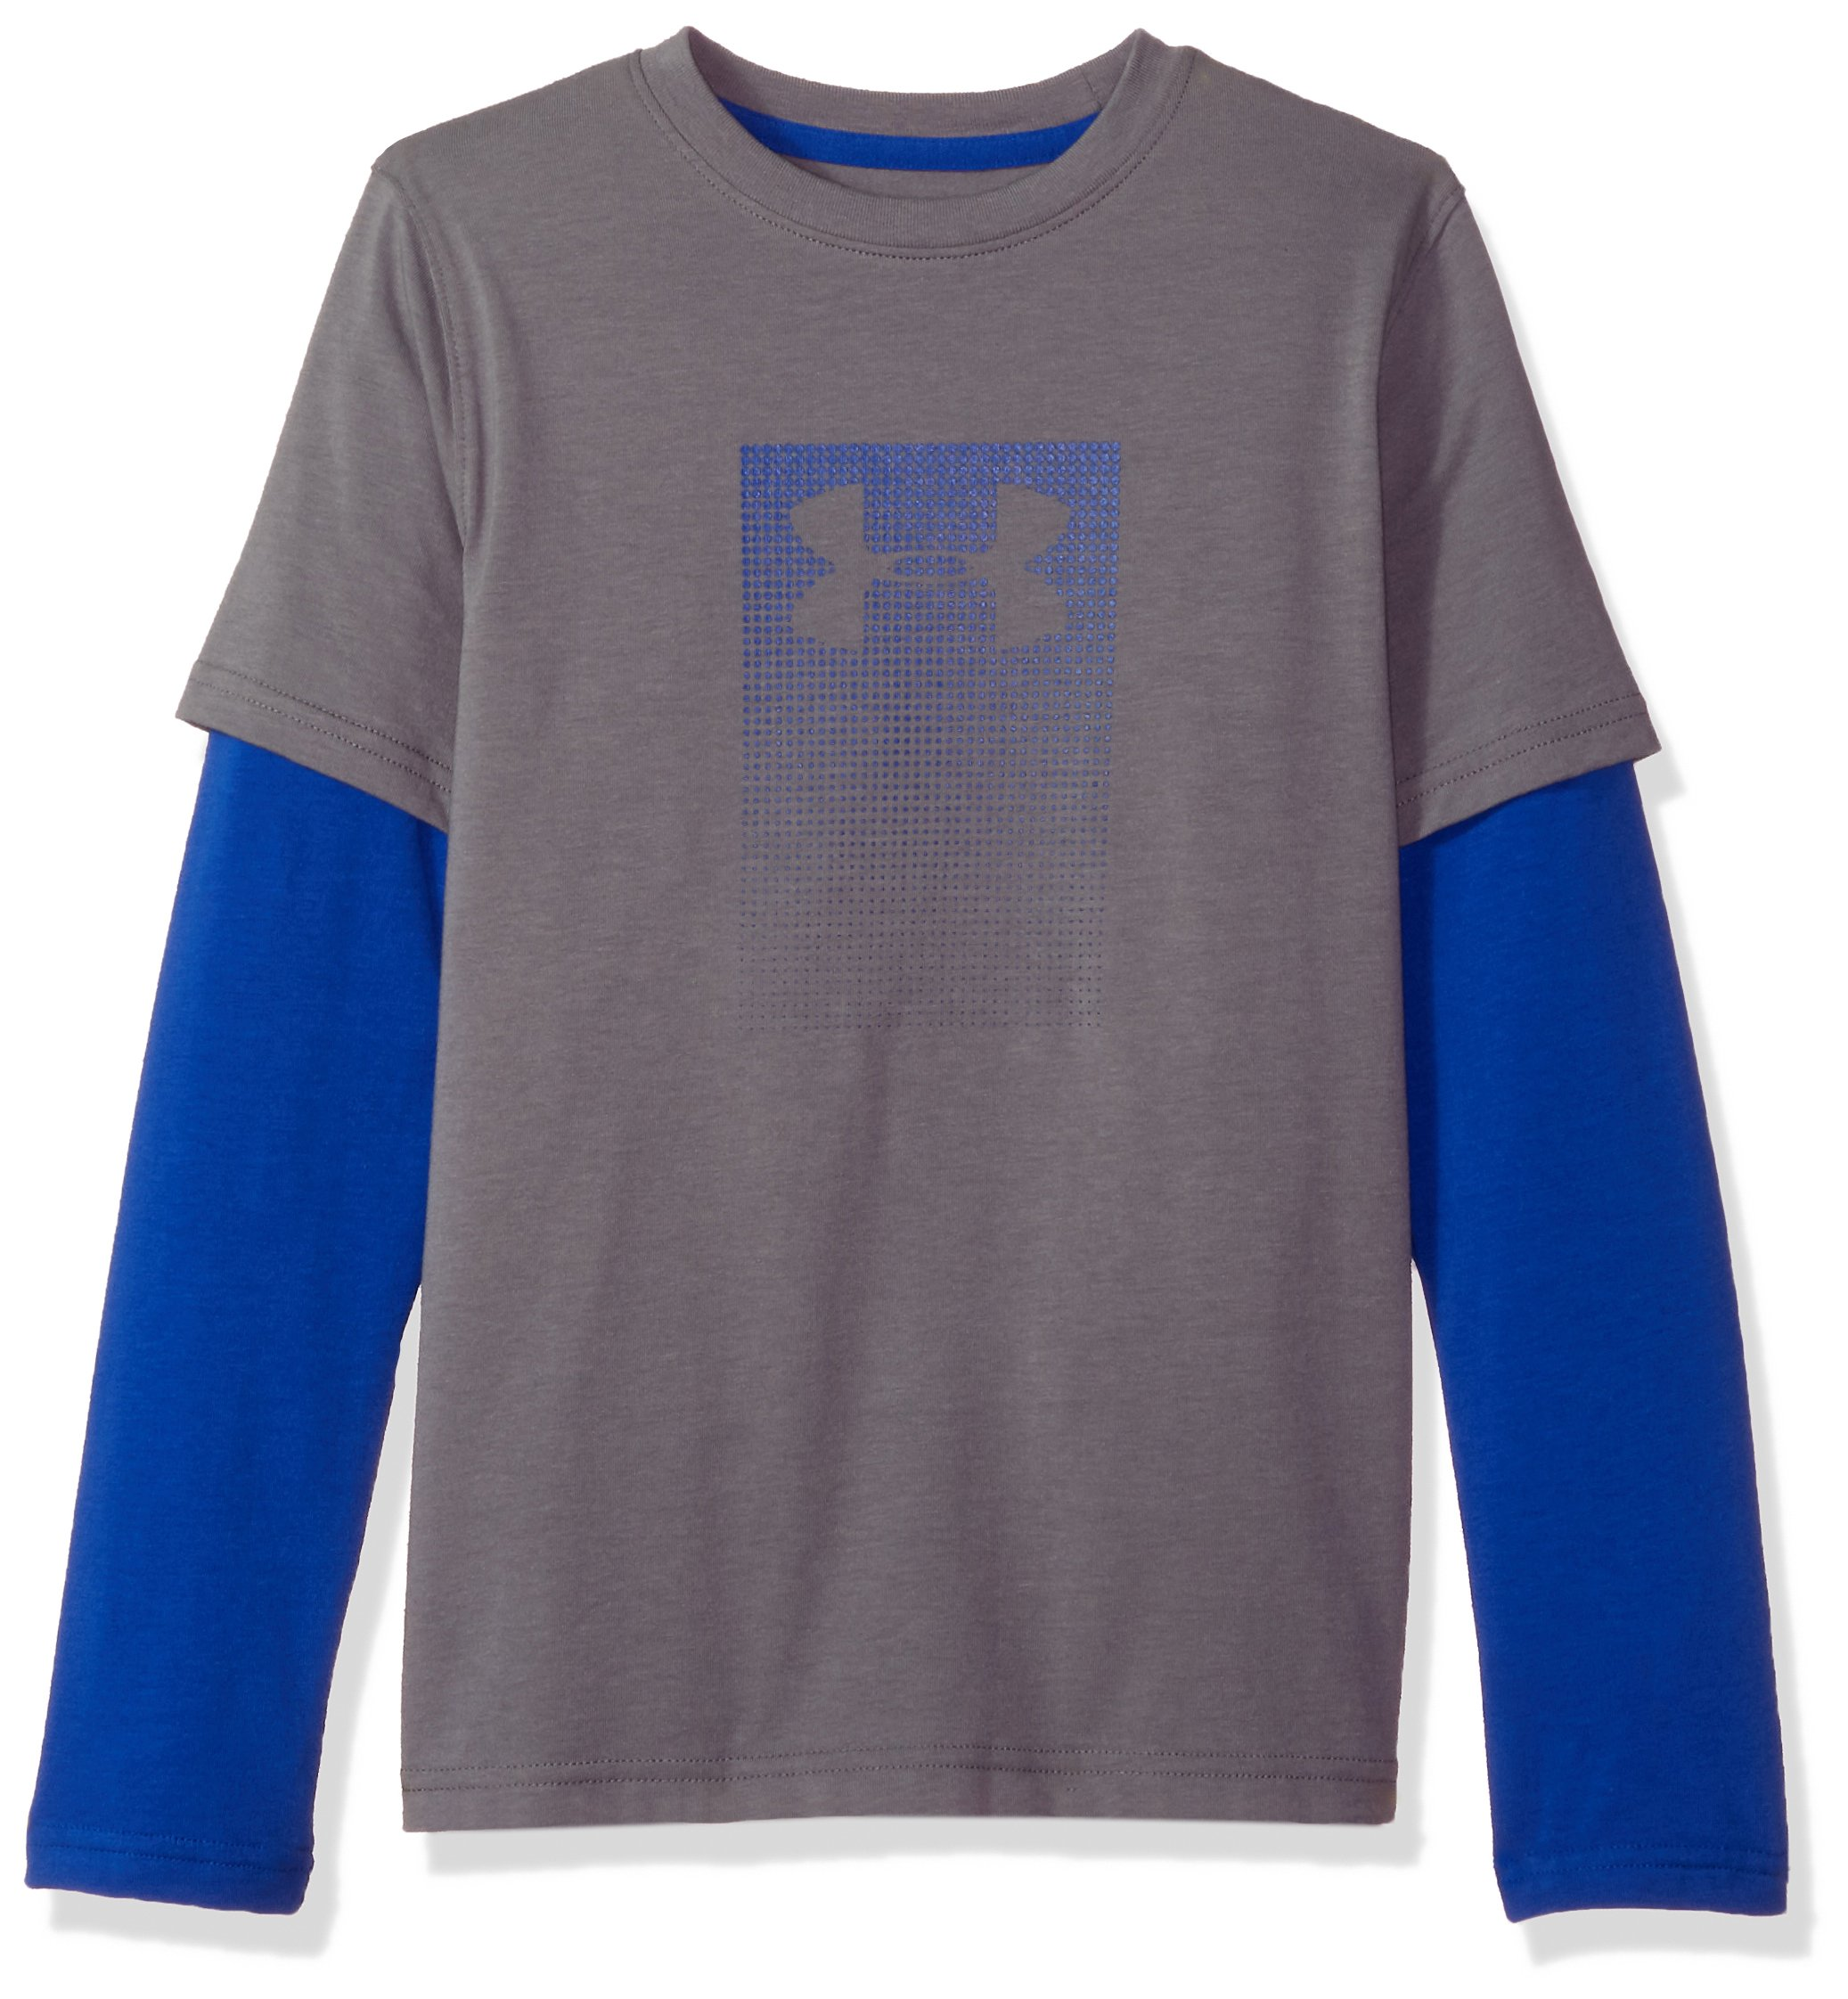 Under Armour Boys' Knit 2-in-1 Long Sleeve Shirt, Graphite (040)/Royal, Youth Large by Under Armour (Image #1)